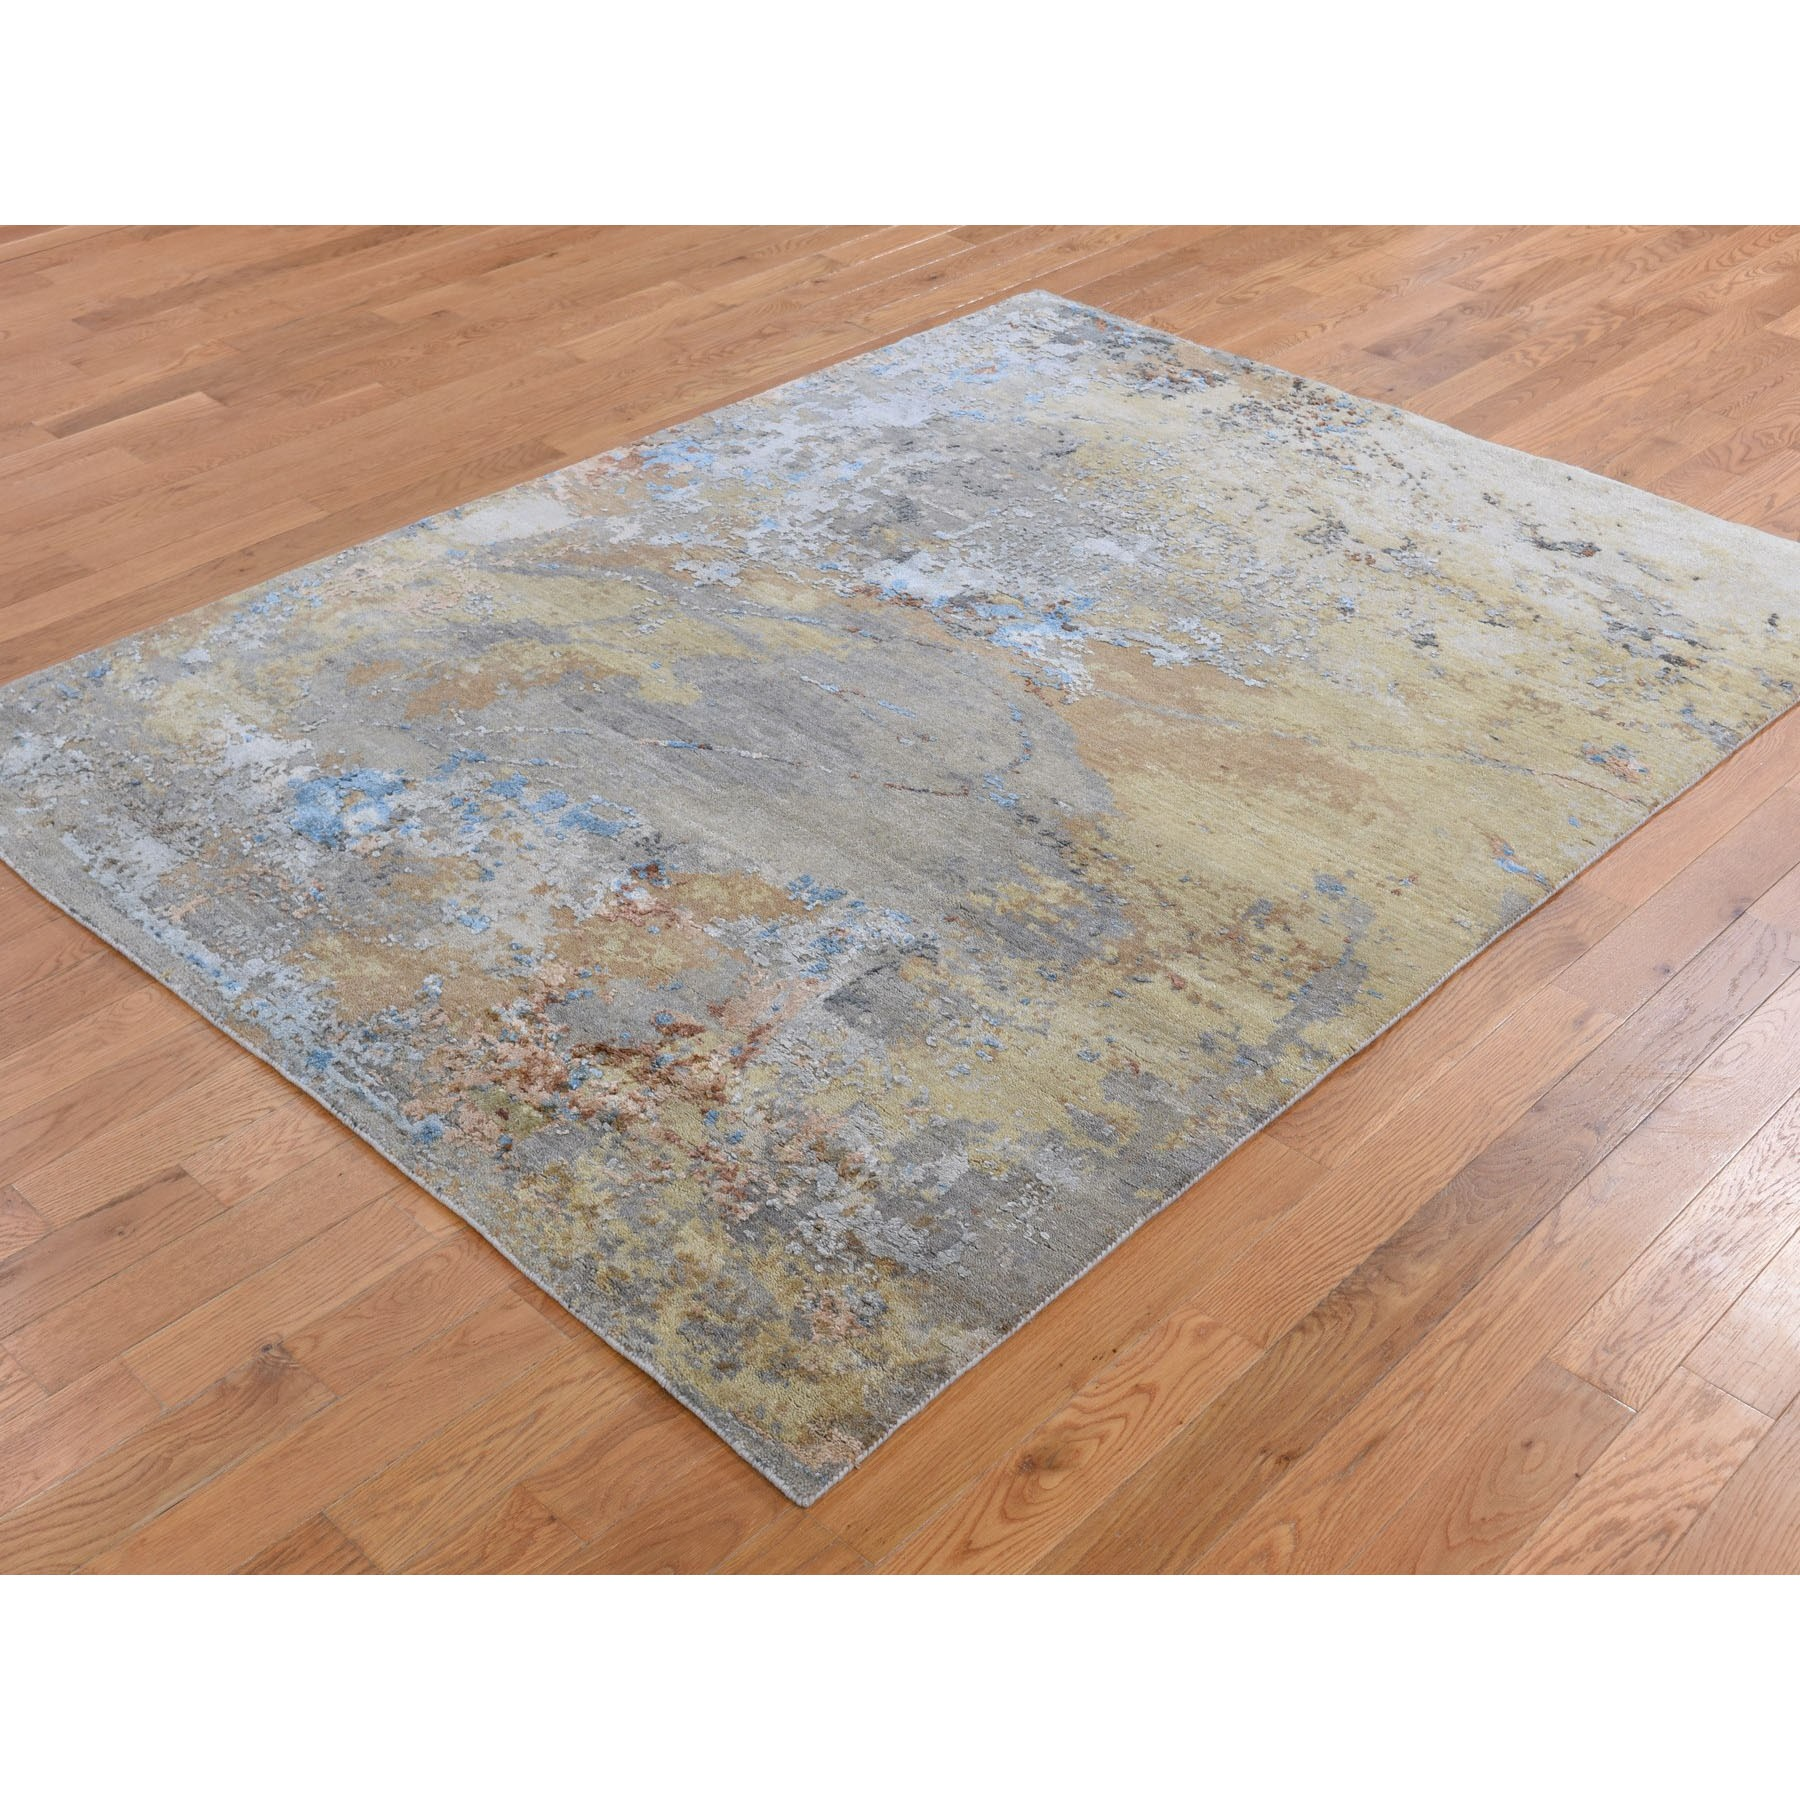 """5'1""""x7' Honey Mustard Abstract Design Wool And Pure Silk Hand Knotted Oriental Rug"""